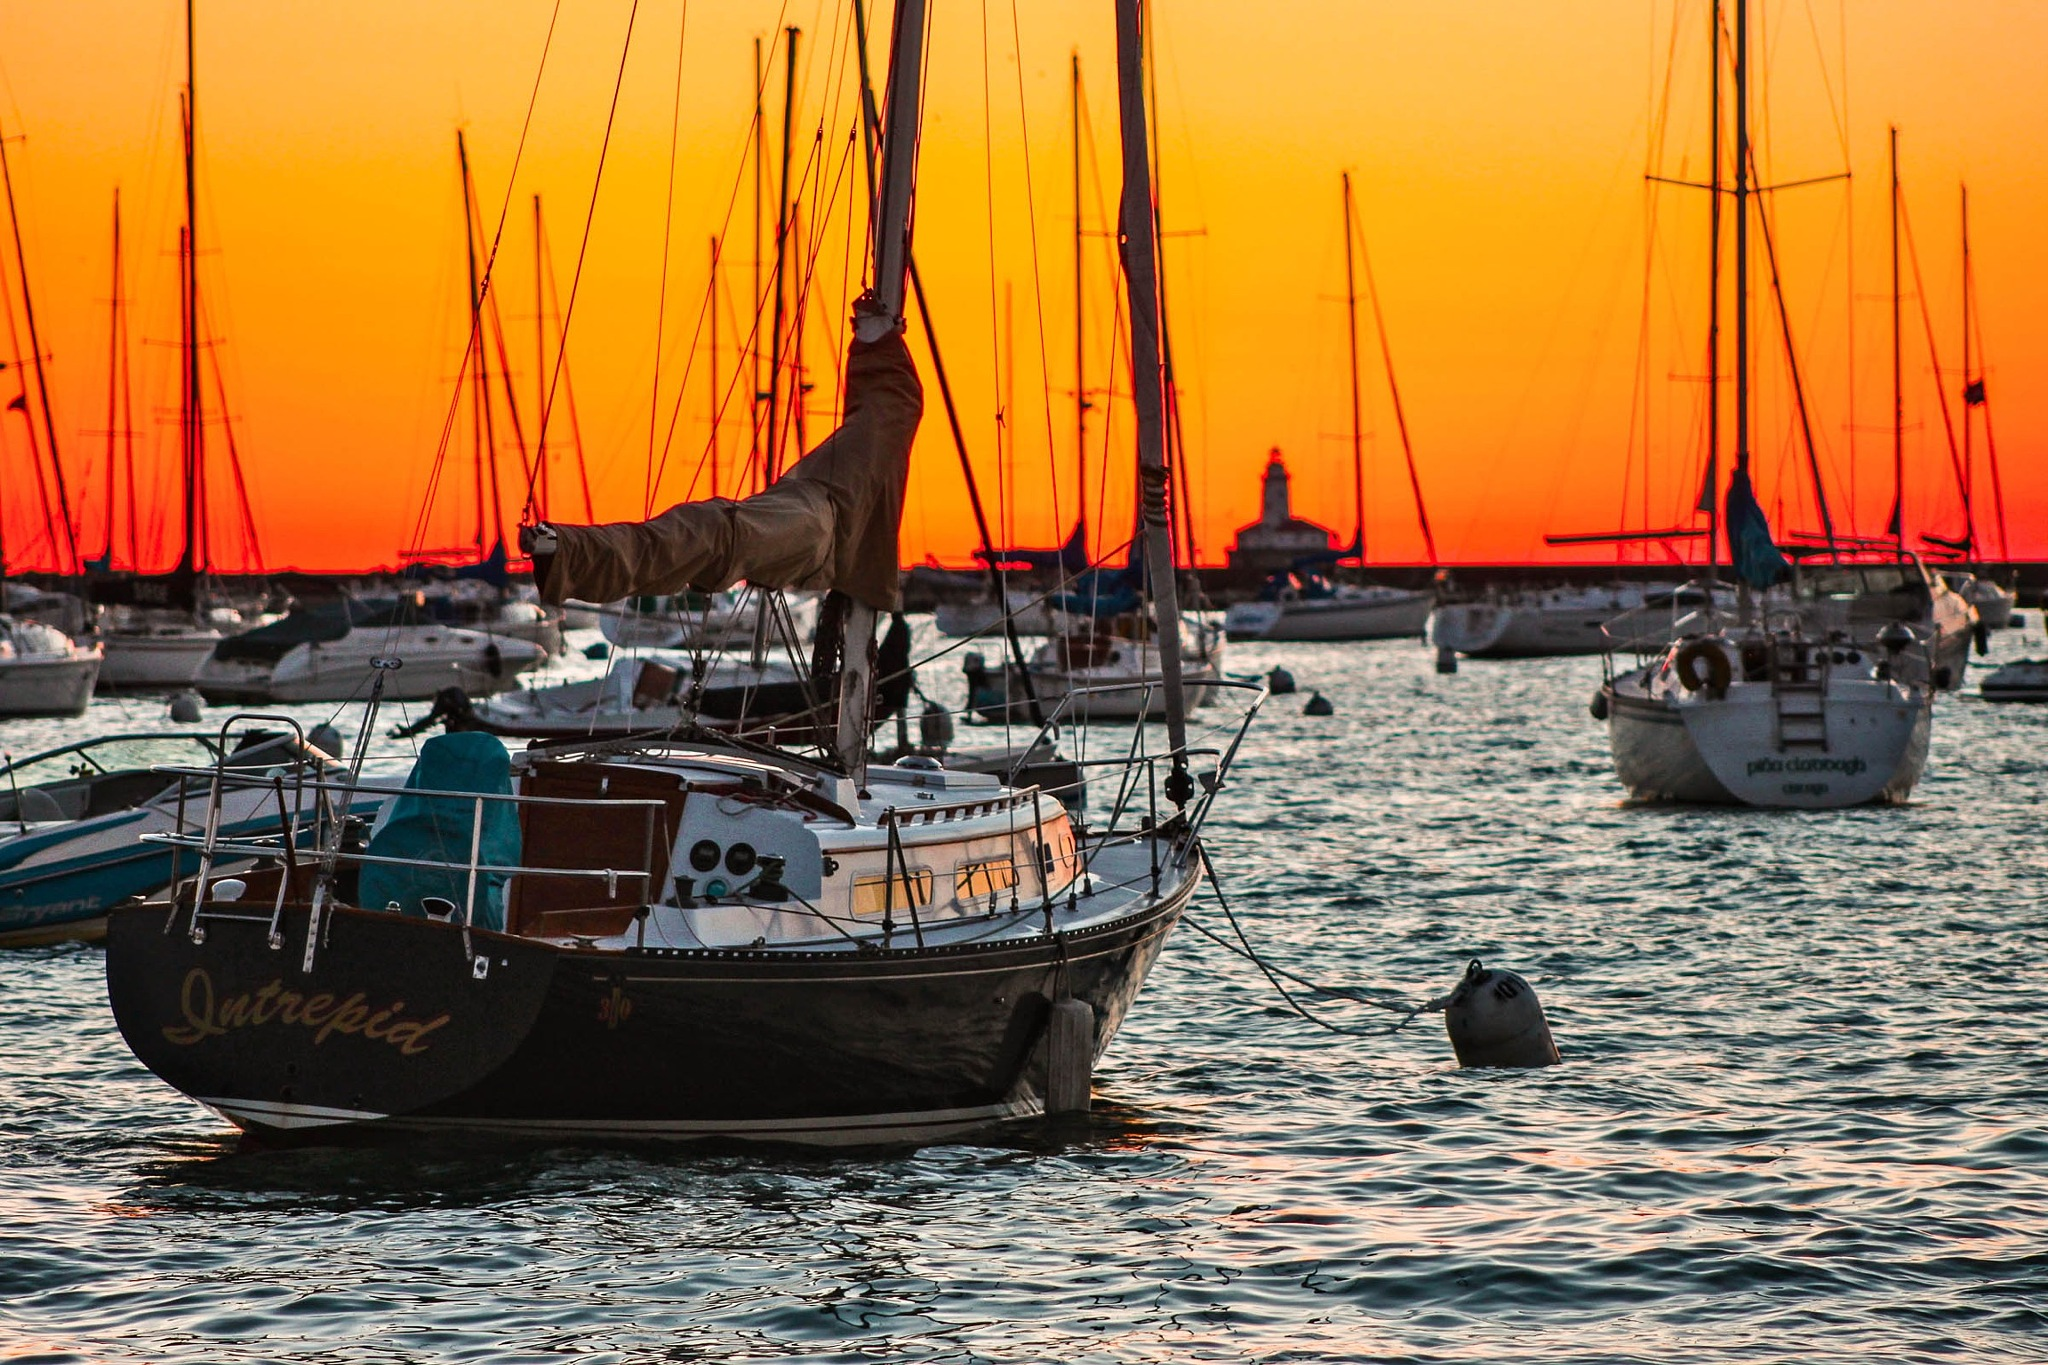 Boat Yard in Lake Michigan  by ZS Photography